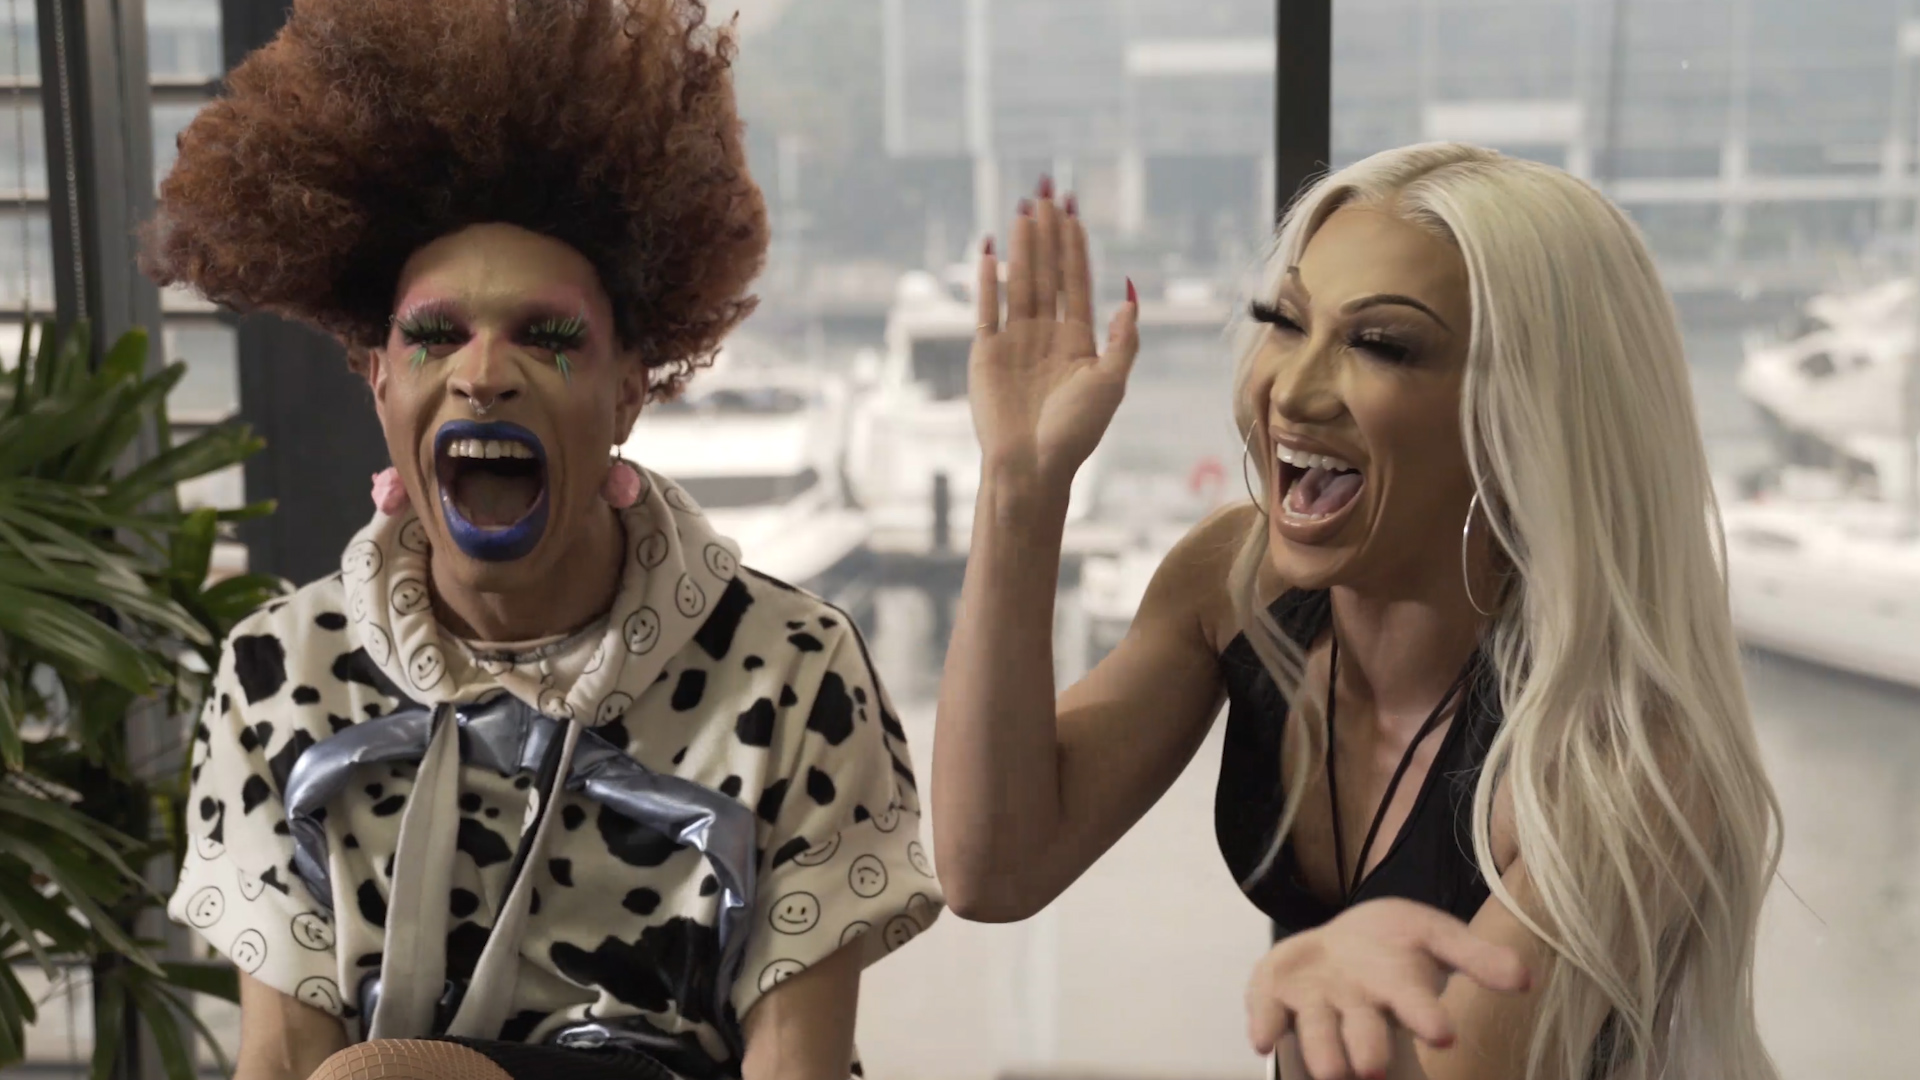 Yvie Oddly and Plastique Tiara reveal what inspired their drag personas